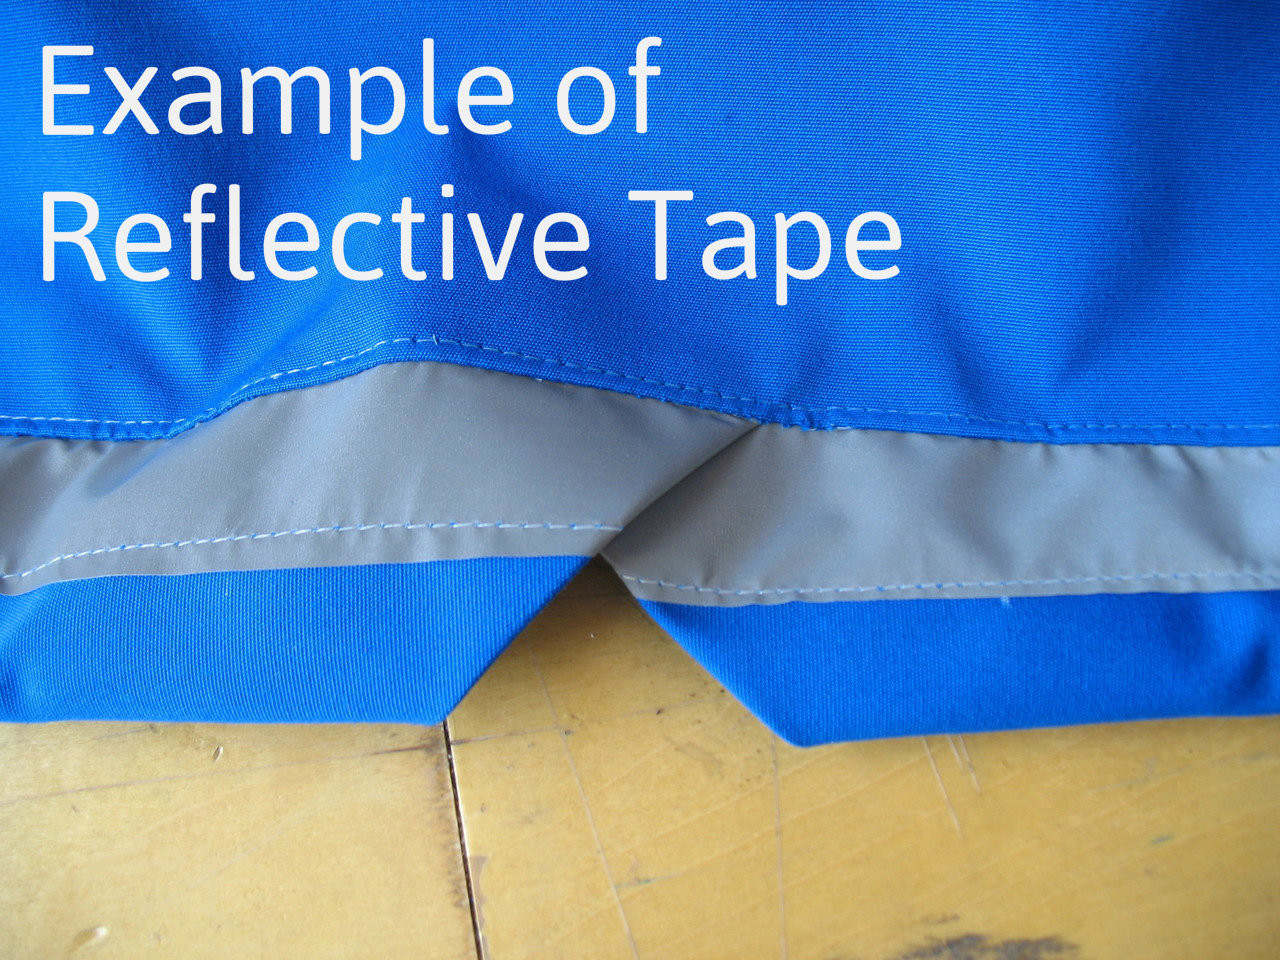 Optional Upgrade: Reflective Tape - increase visibility while parked on the street or while on a mooring.